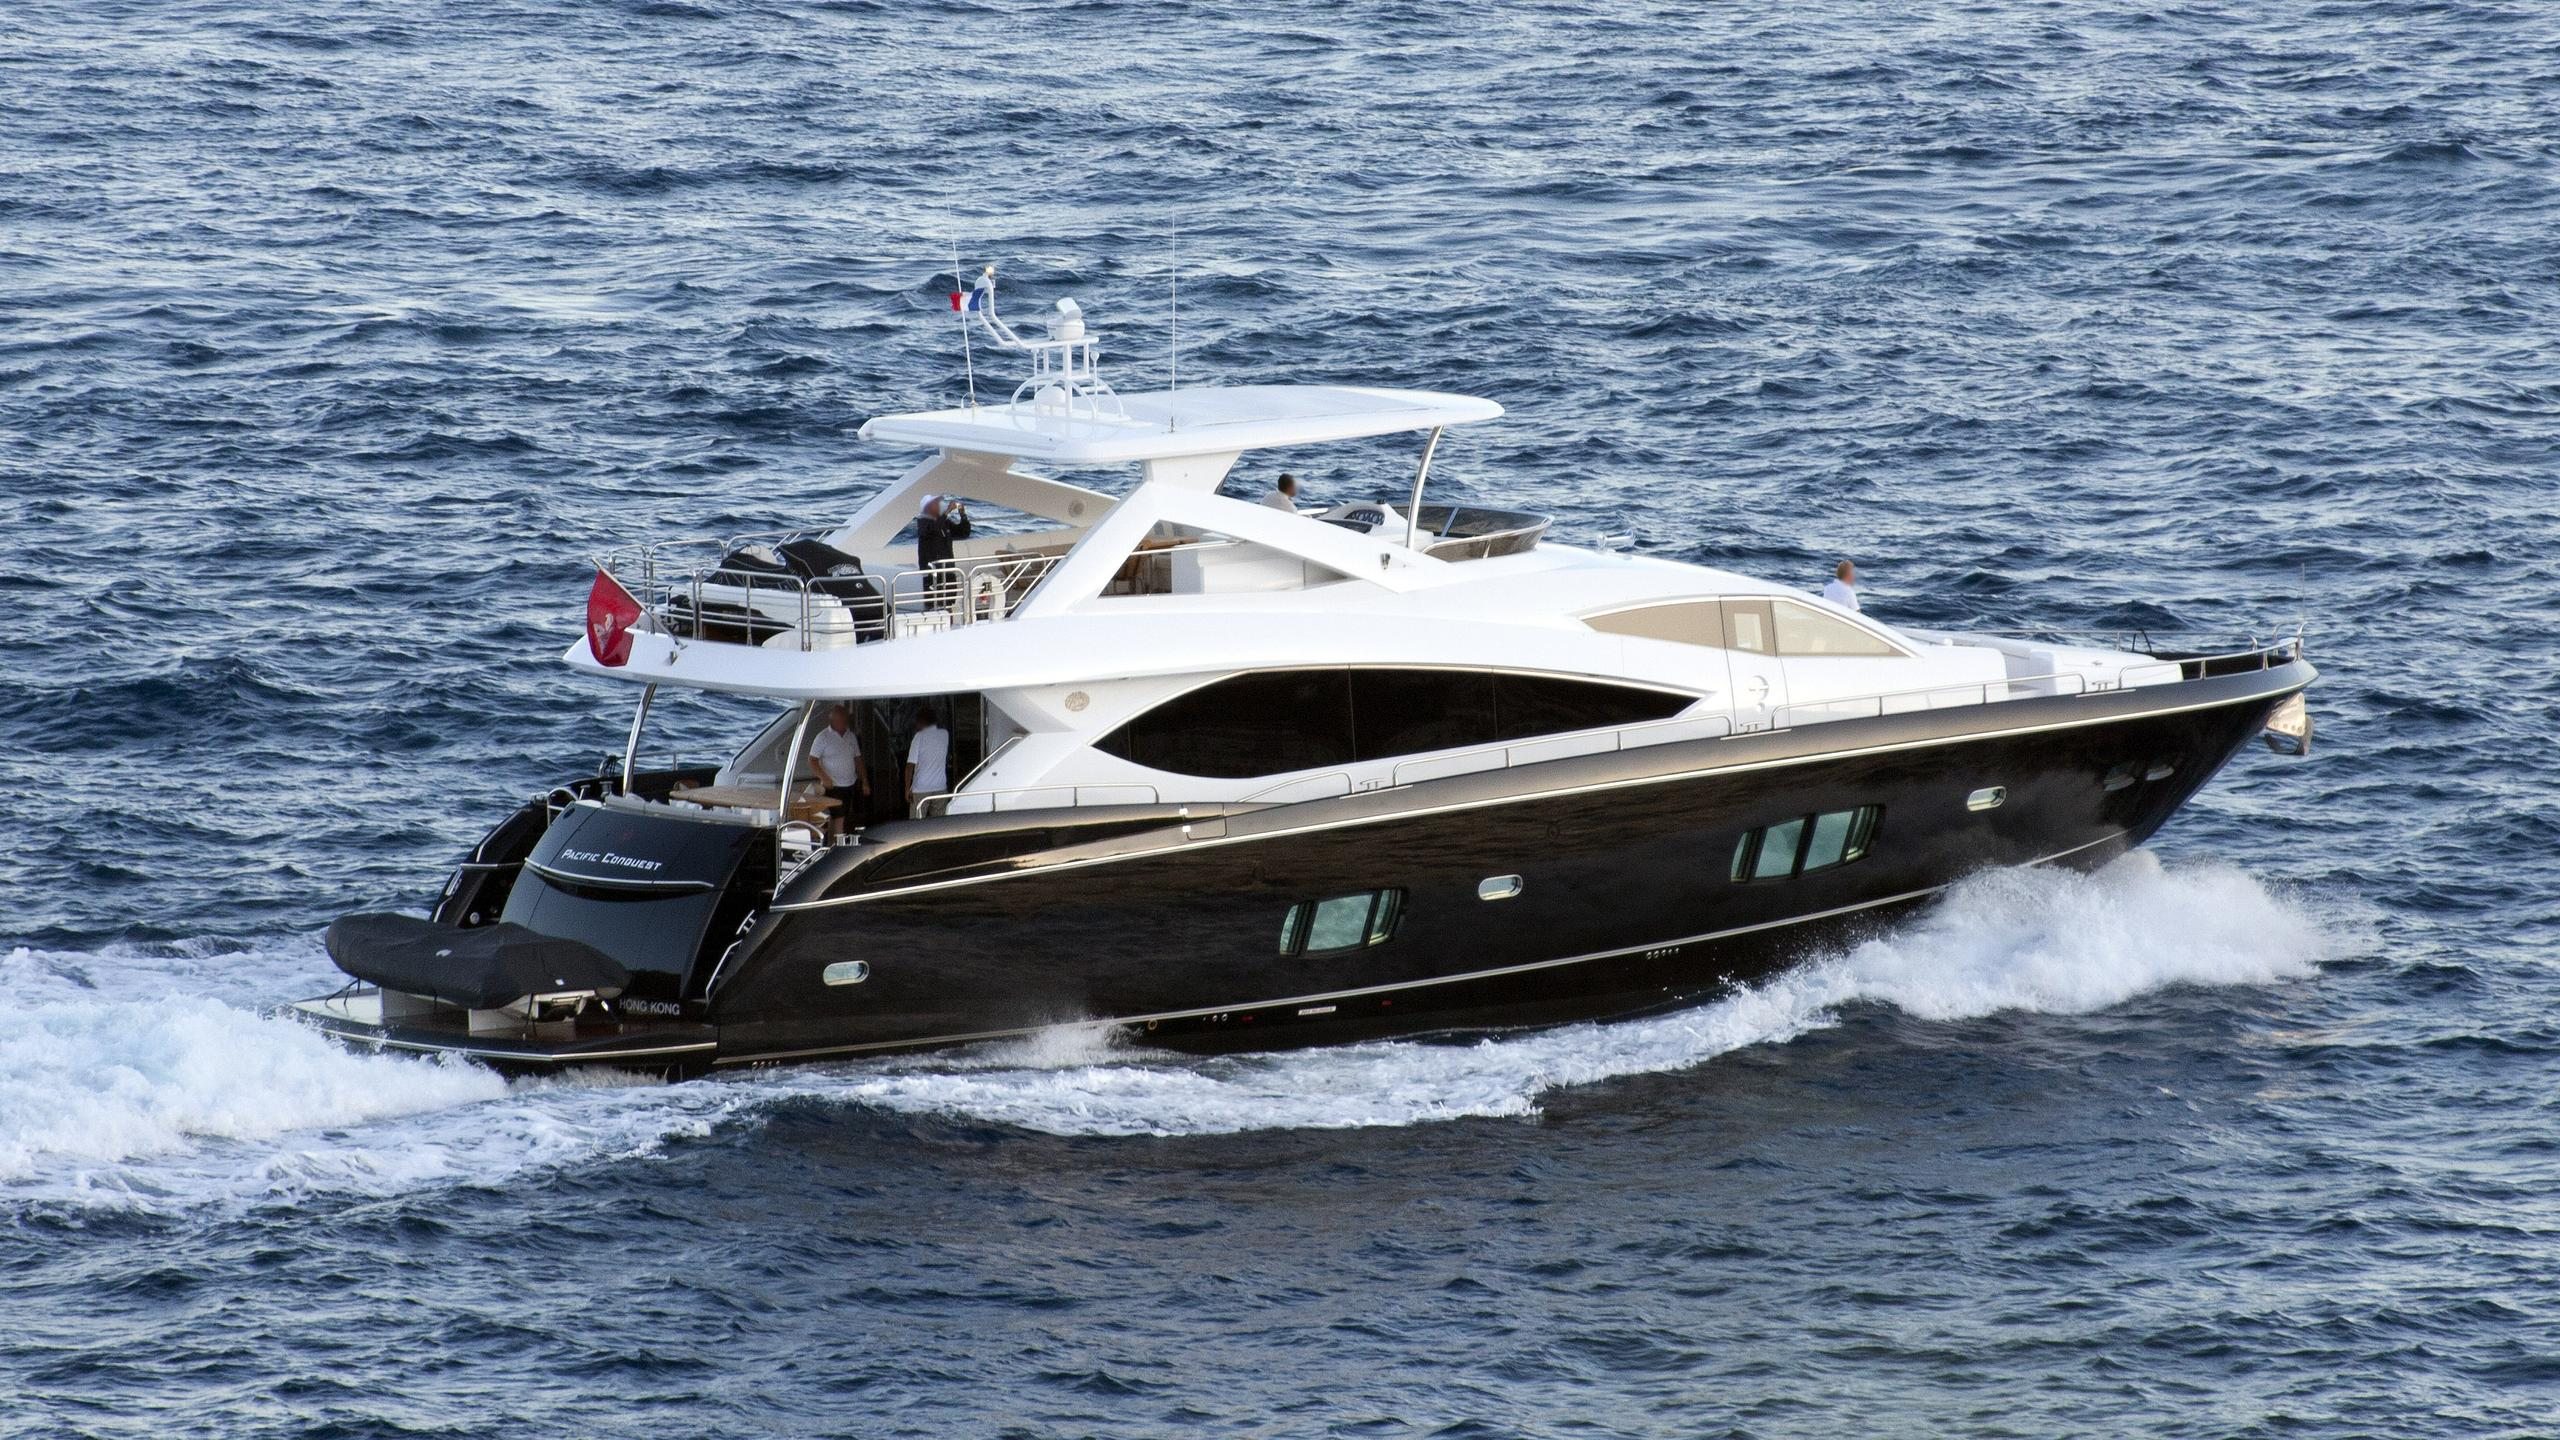 pacific-conquest-motor-yacht-sunseeker-88-2009-27m-cruising